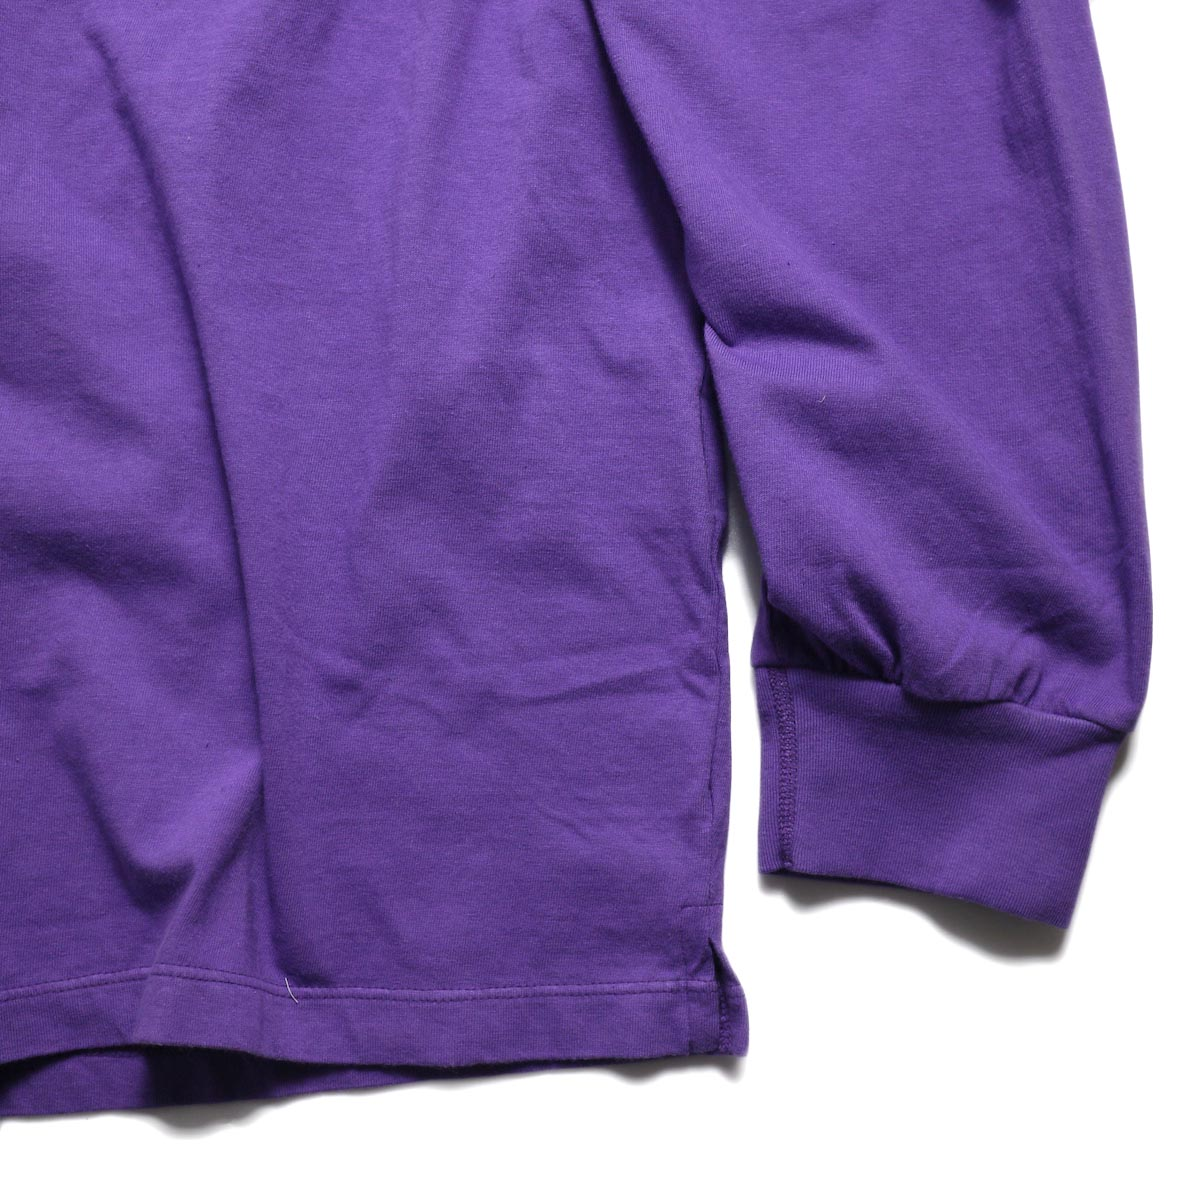 UNUSED / US1595 Long Sleeve Pocket T-Shirt -Purple 裾、袖